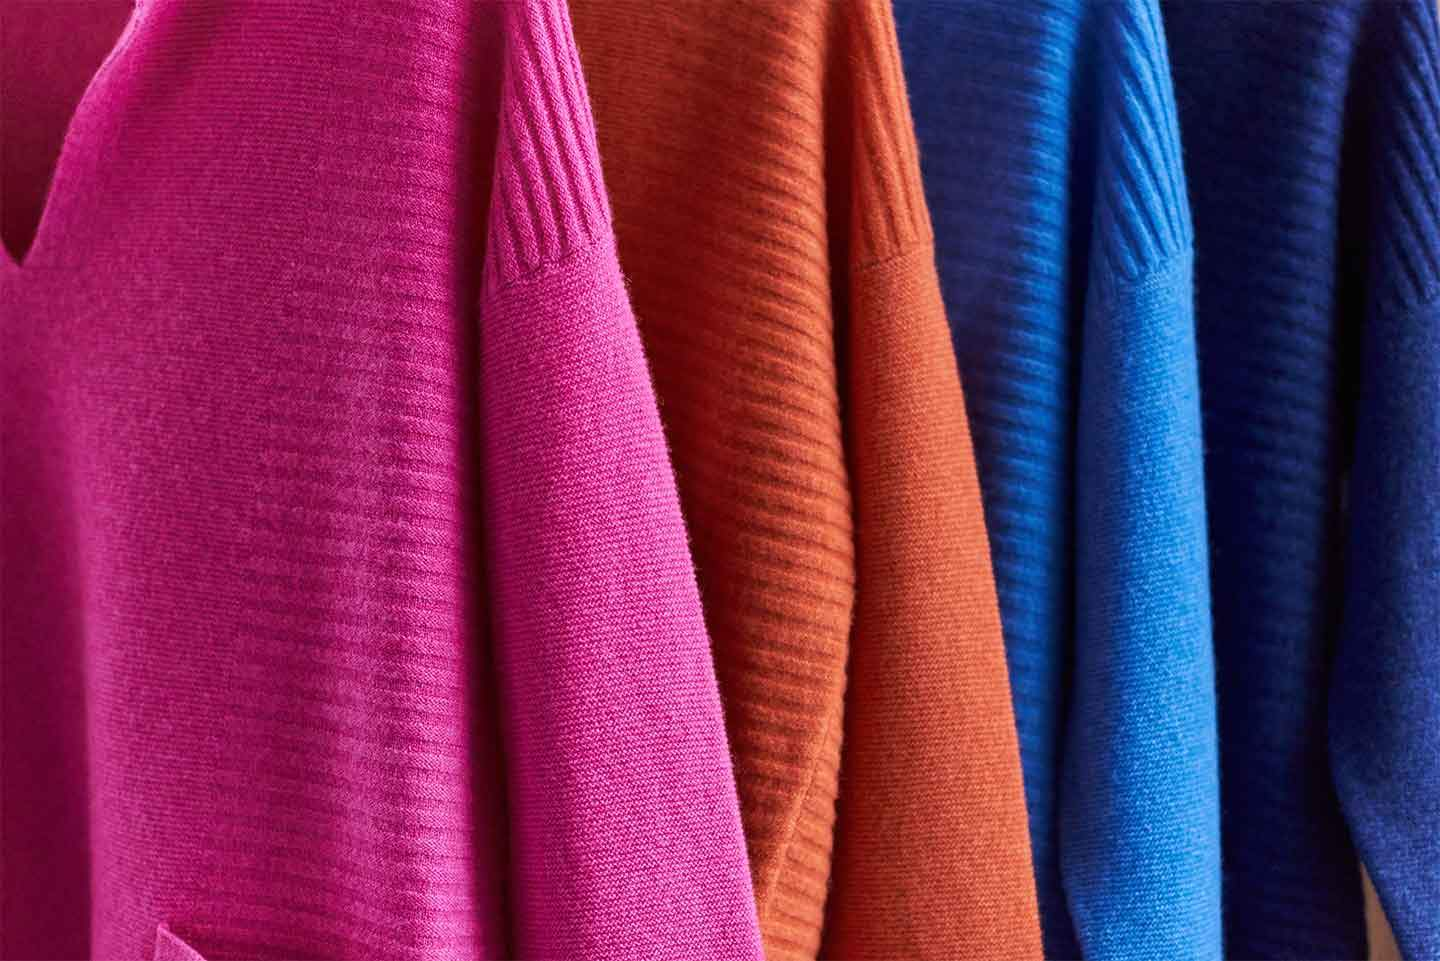 Cashmere jumpers in a range of colours hanging